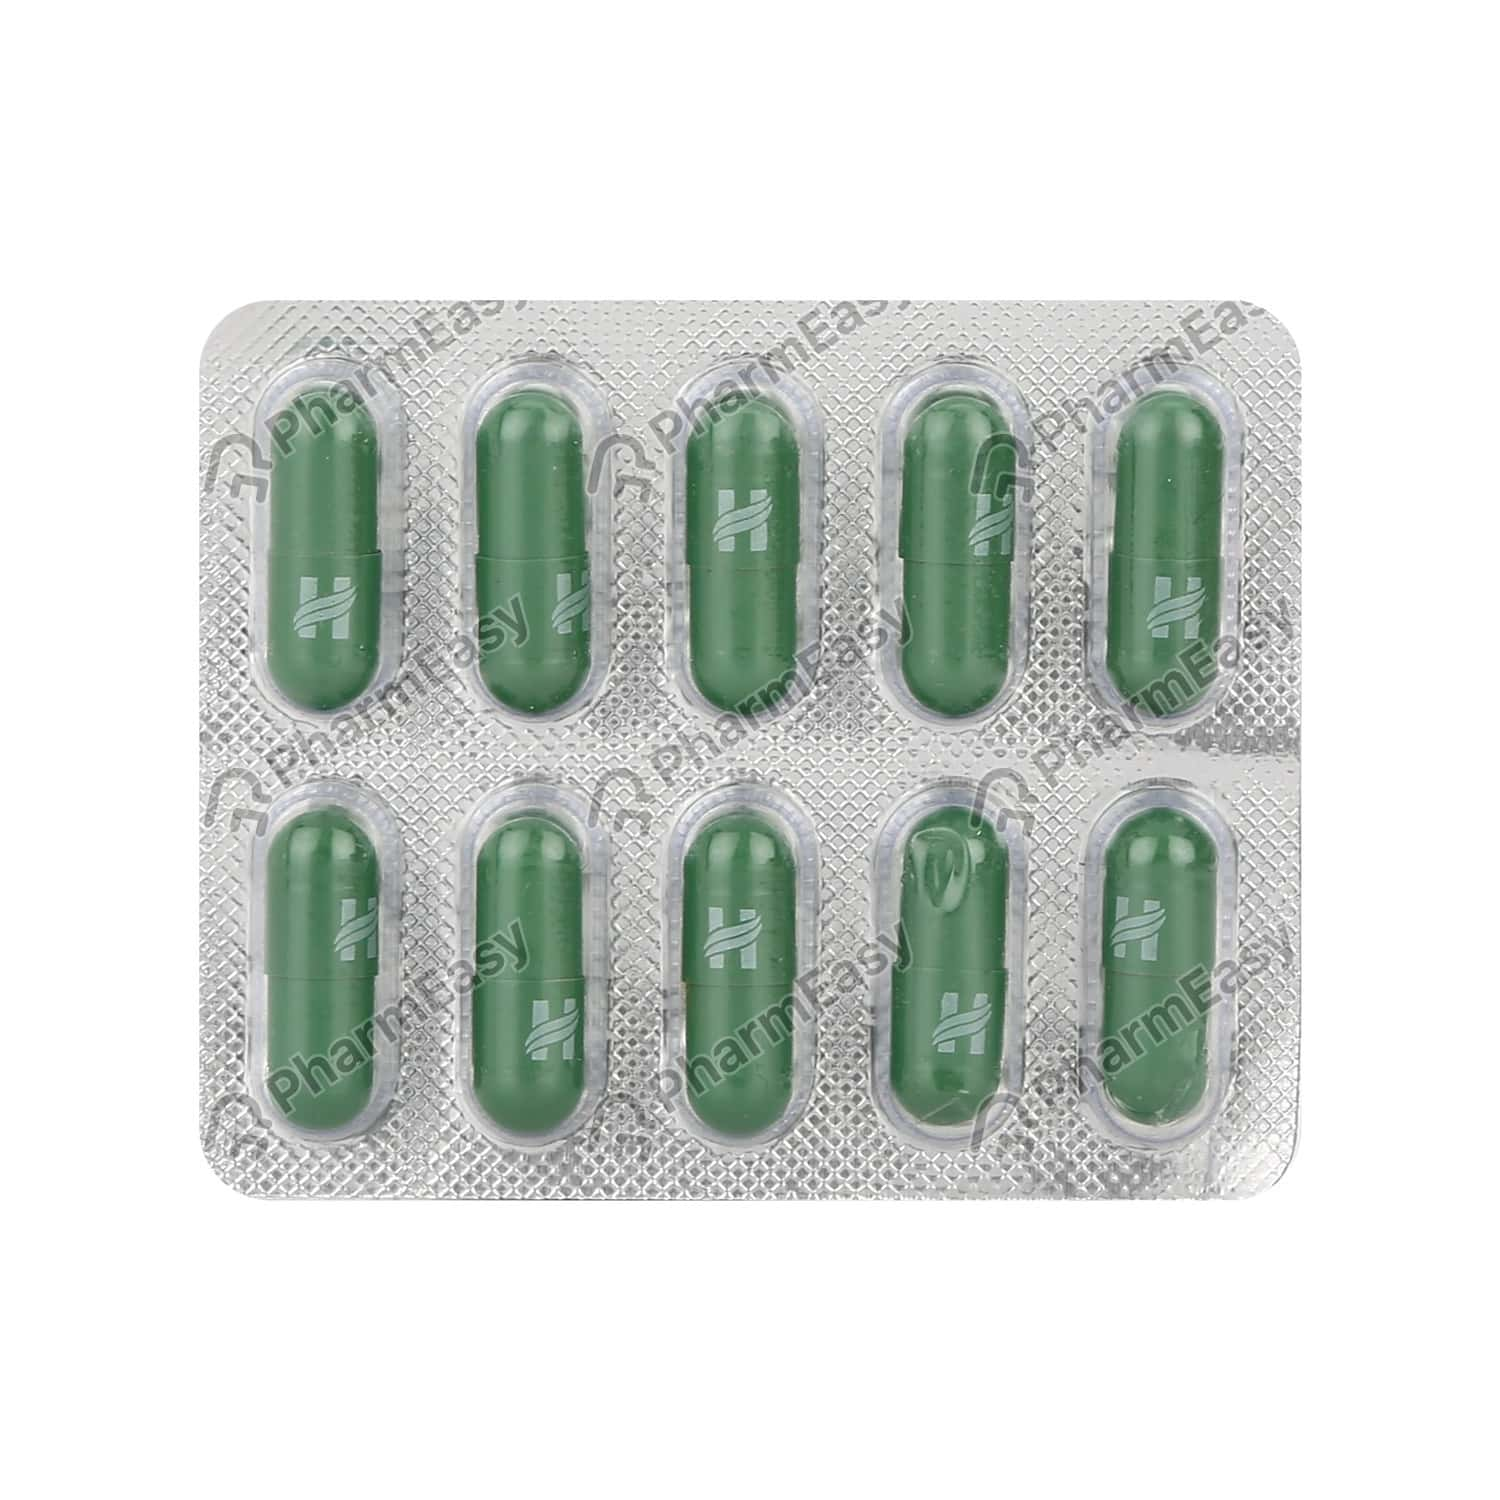 Herbolax Strip Of 10 Capsules